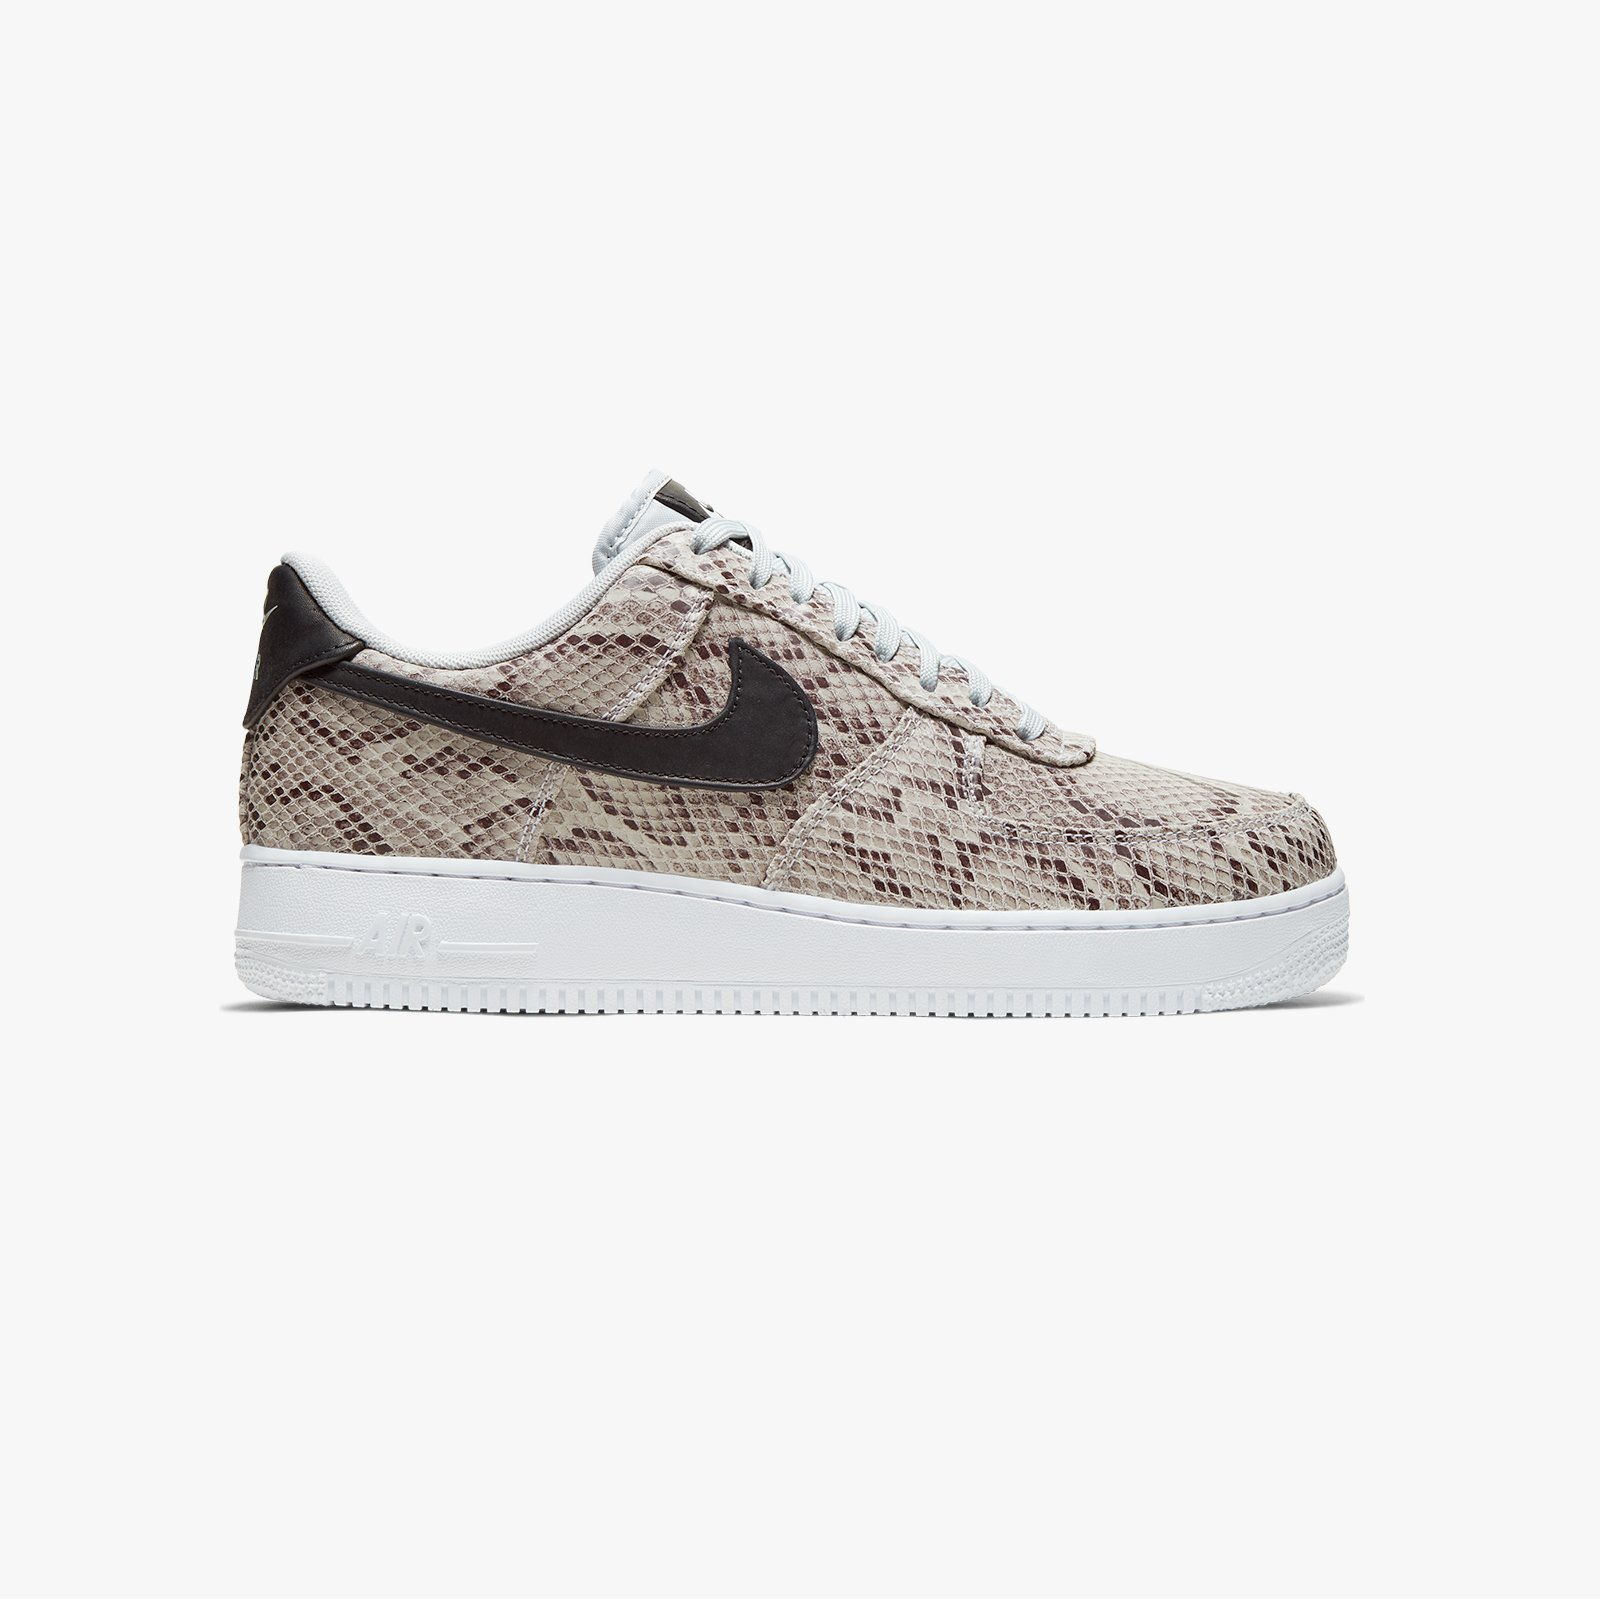 Nike Air Force 1 07 Premium Bq4424 100 Sneakersnstuff I